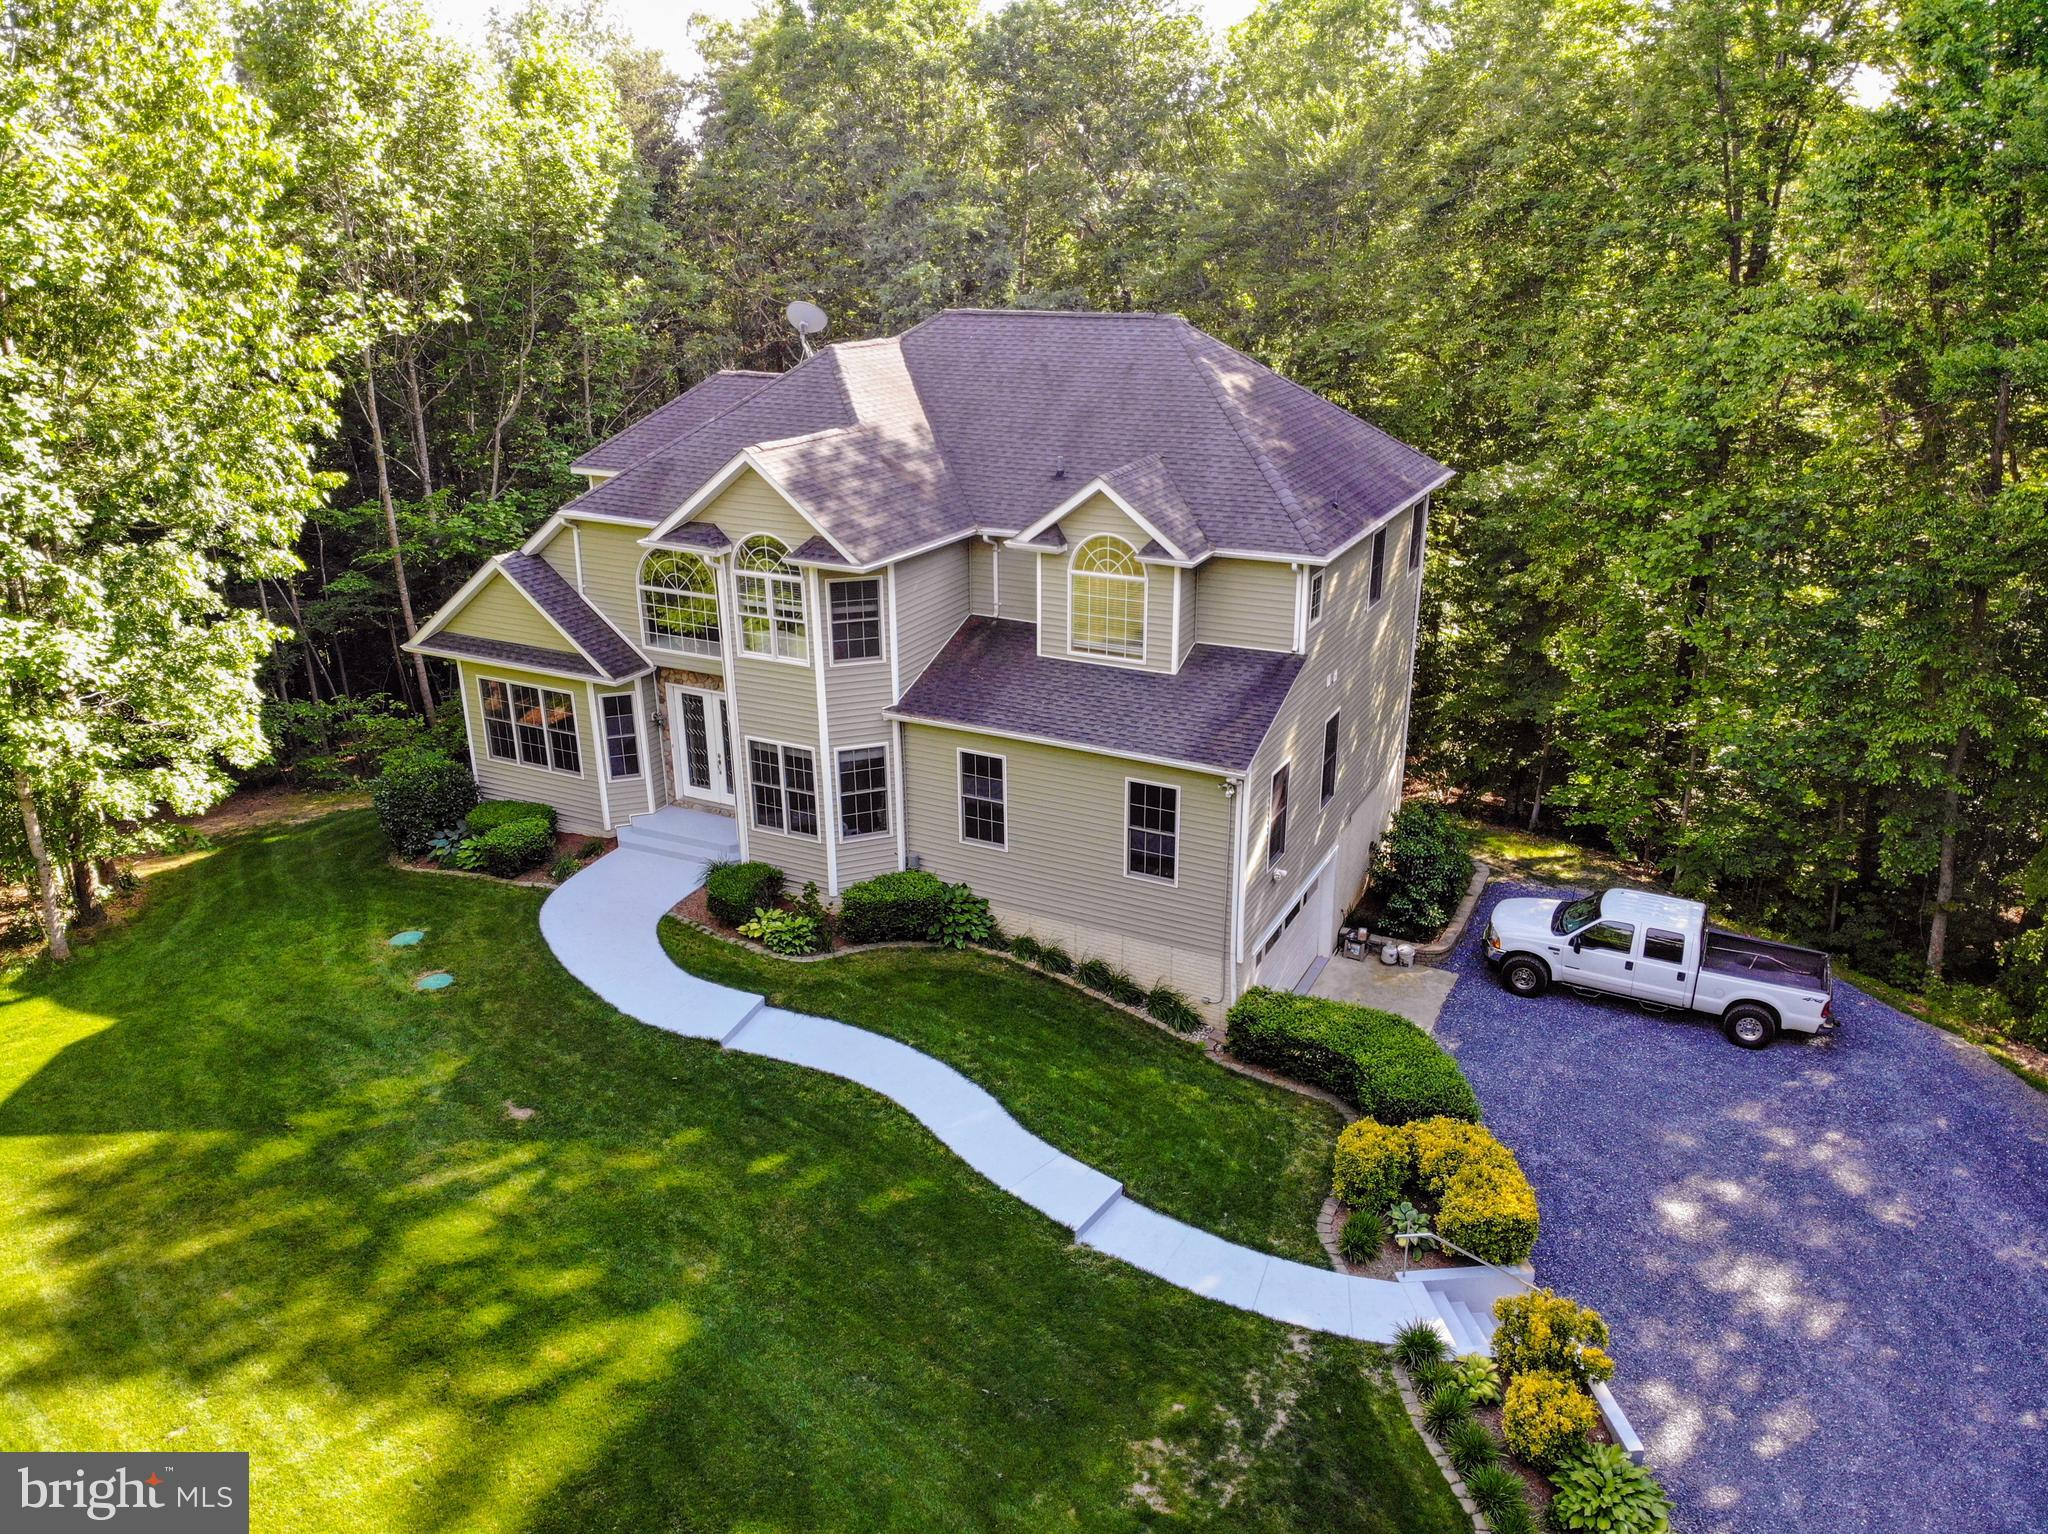 42001 PLEASANT VALLEY LANE, HOLLYWOOD, MD 20636